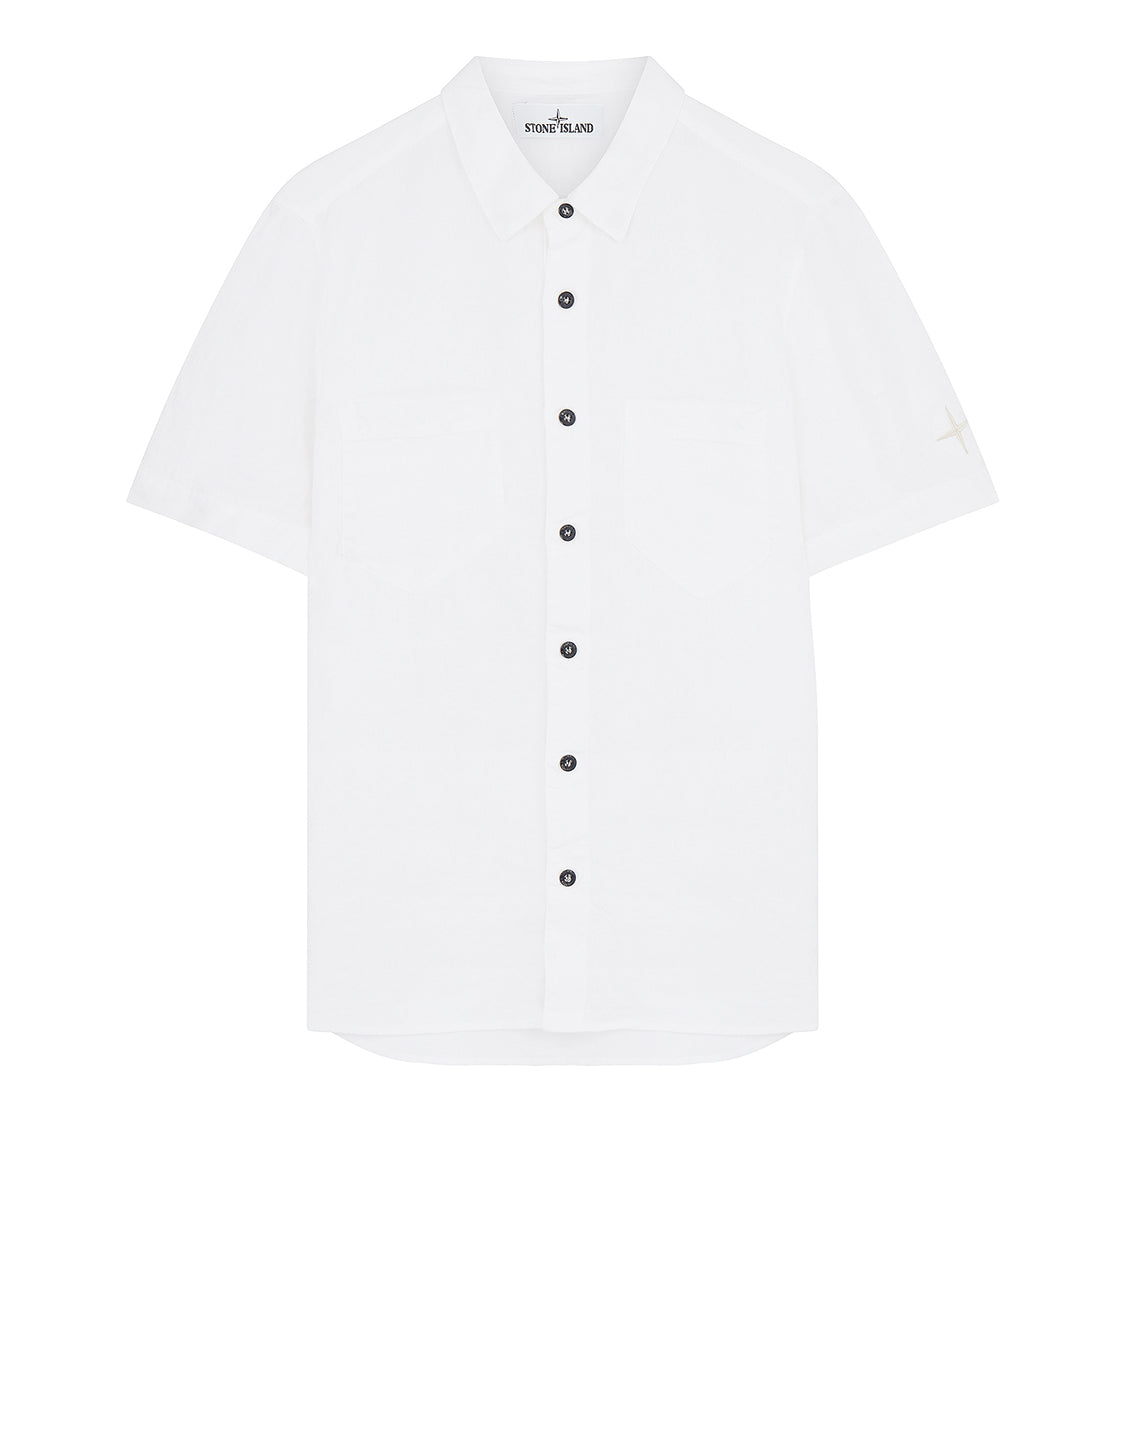 12601 'FISSATO' DYE TREATMENT Shirt in White